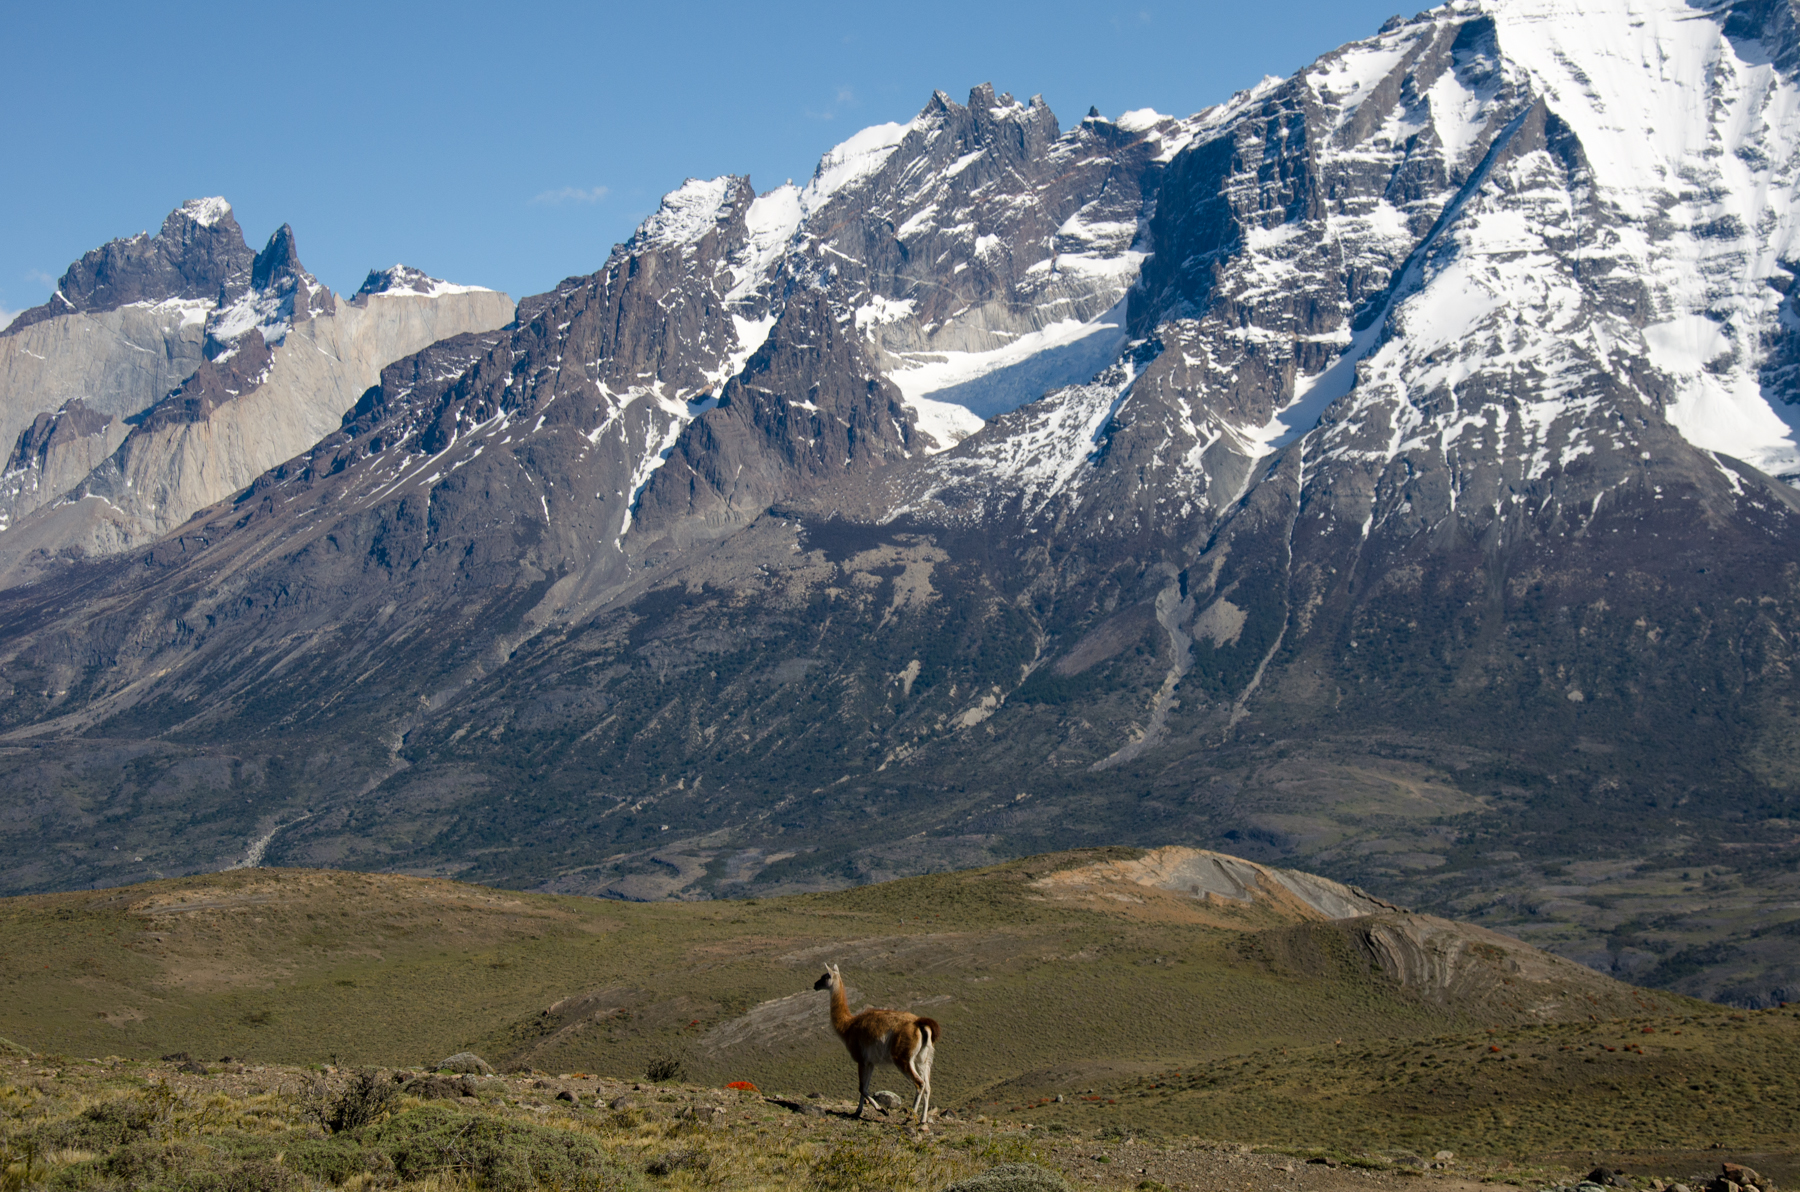 Guanaco spotting in the Torres del Paine National Park